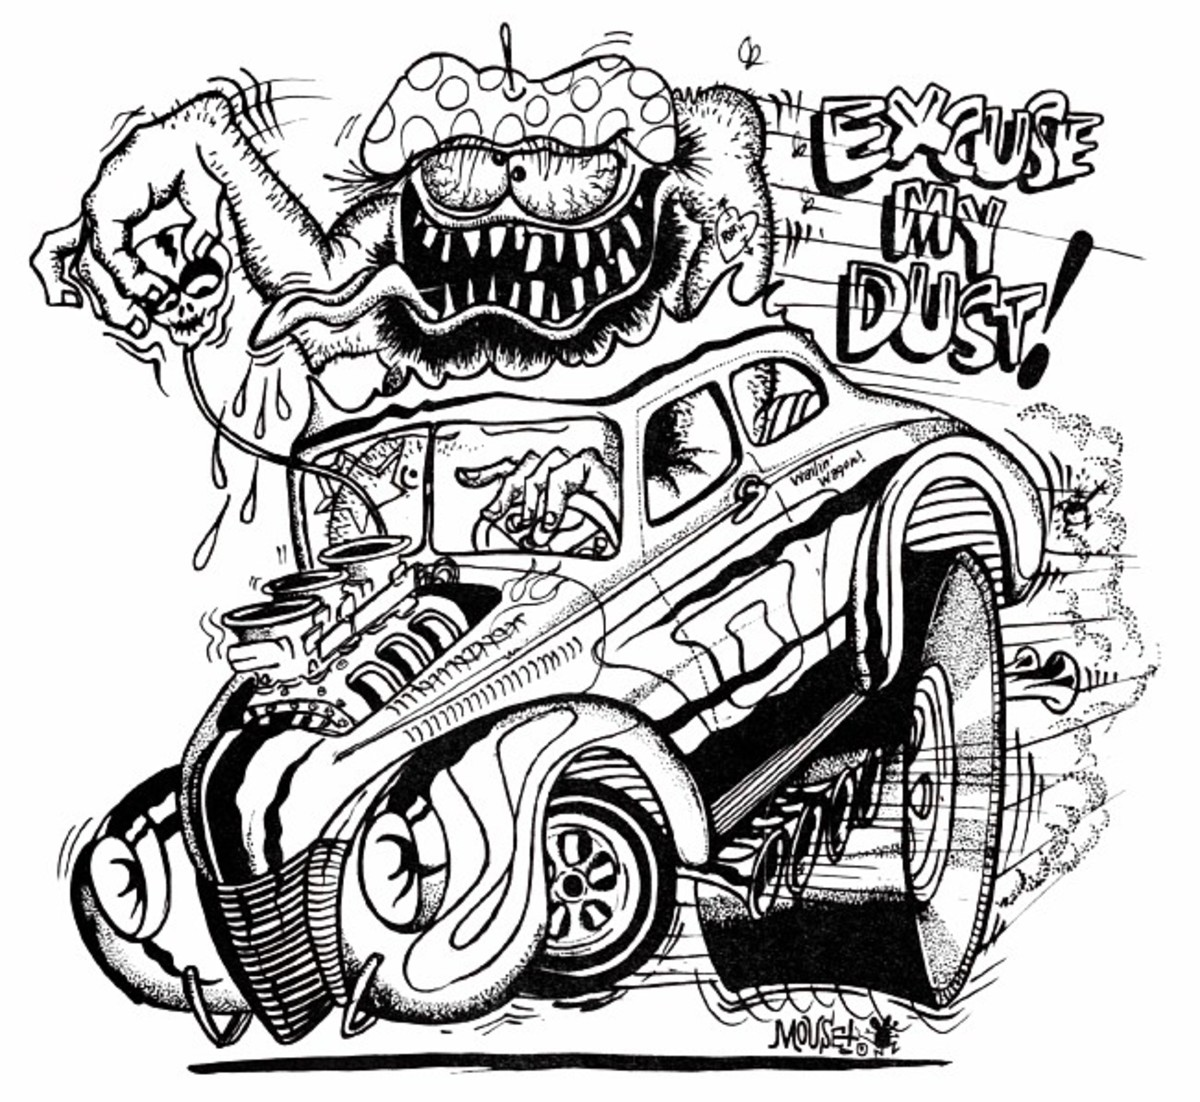 Excuse My Dust T- Shirt Design by Stanley Mouse